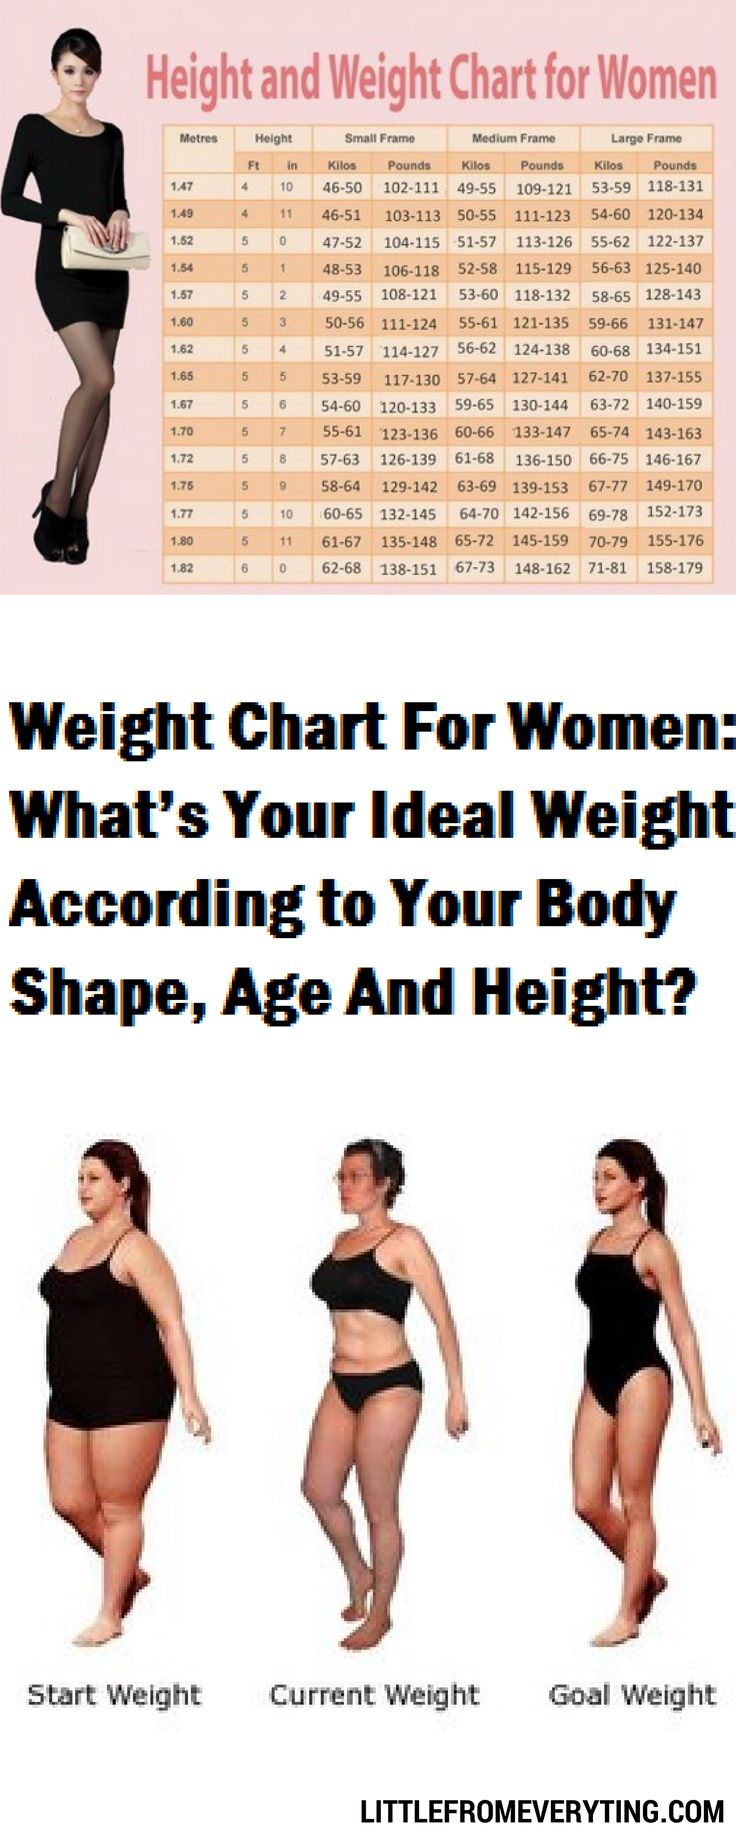 17 best ideas about Height Weight Charts on Pinterest ...